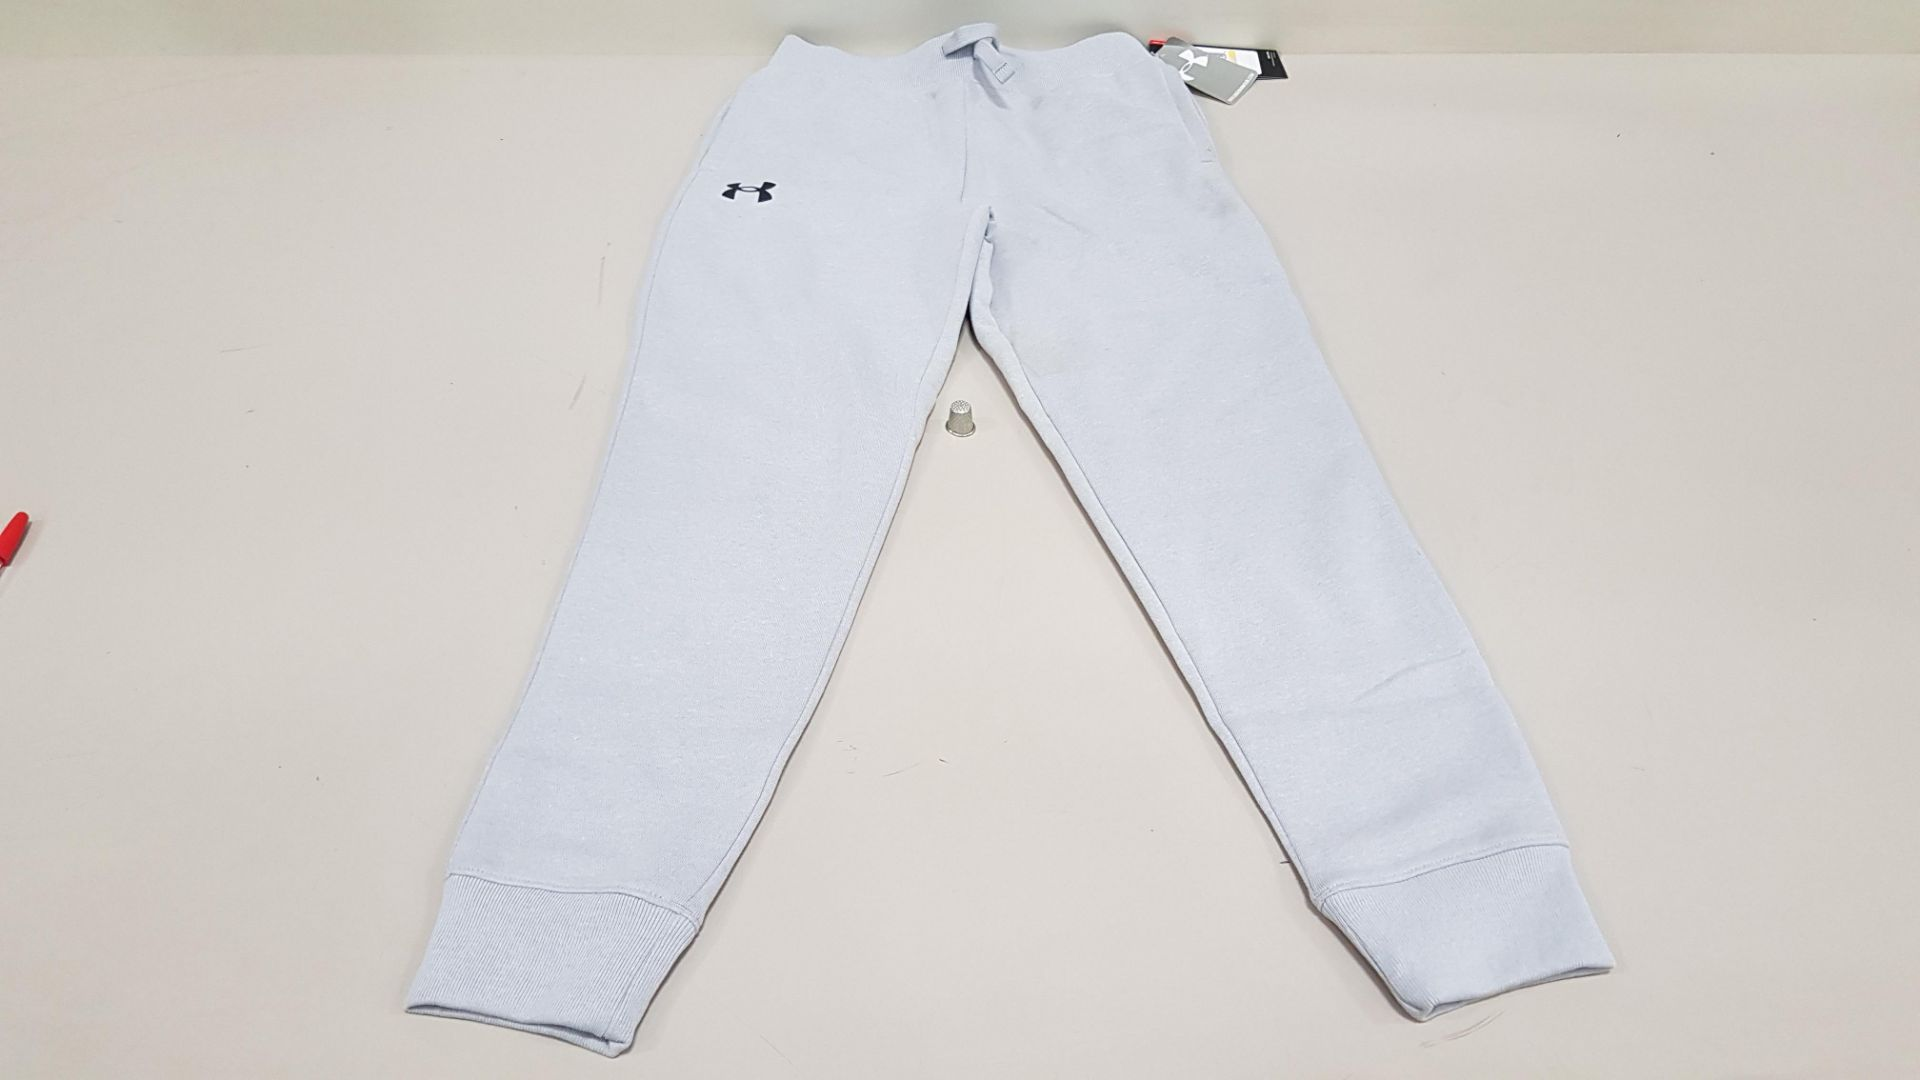 10 X BRAND NEW UNDER ARMOUR BOYS UNDER ARMOUR PANTS SIZE YSM/P/CH